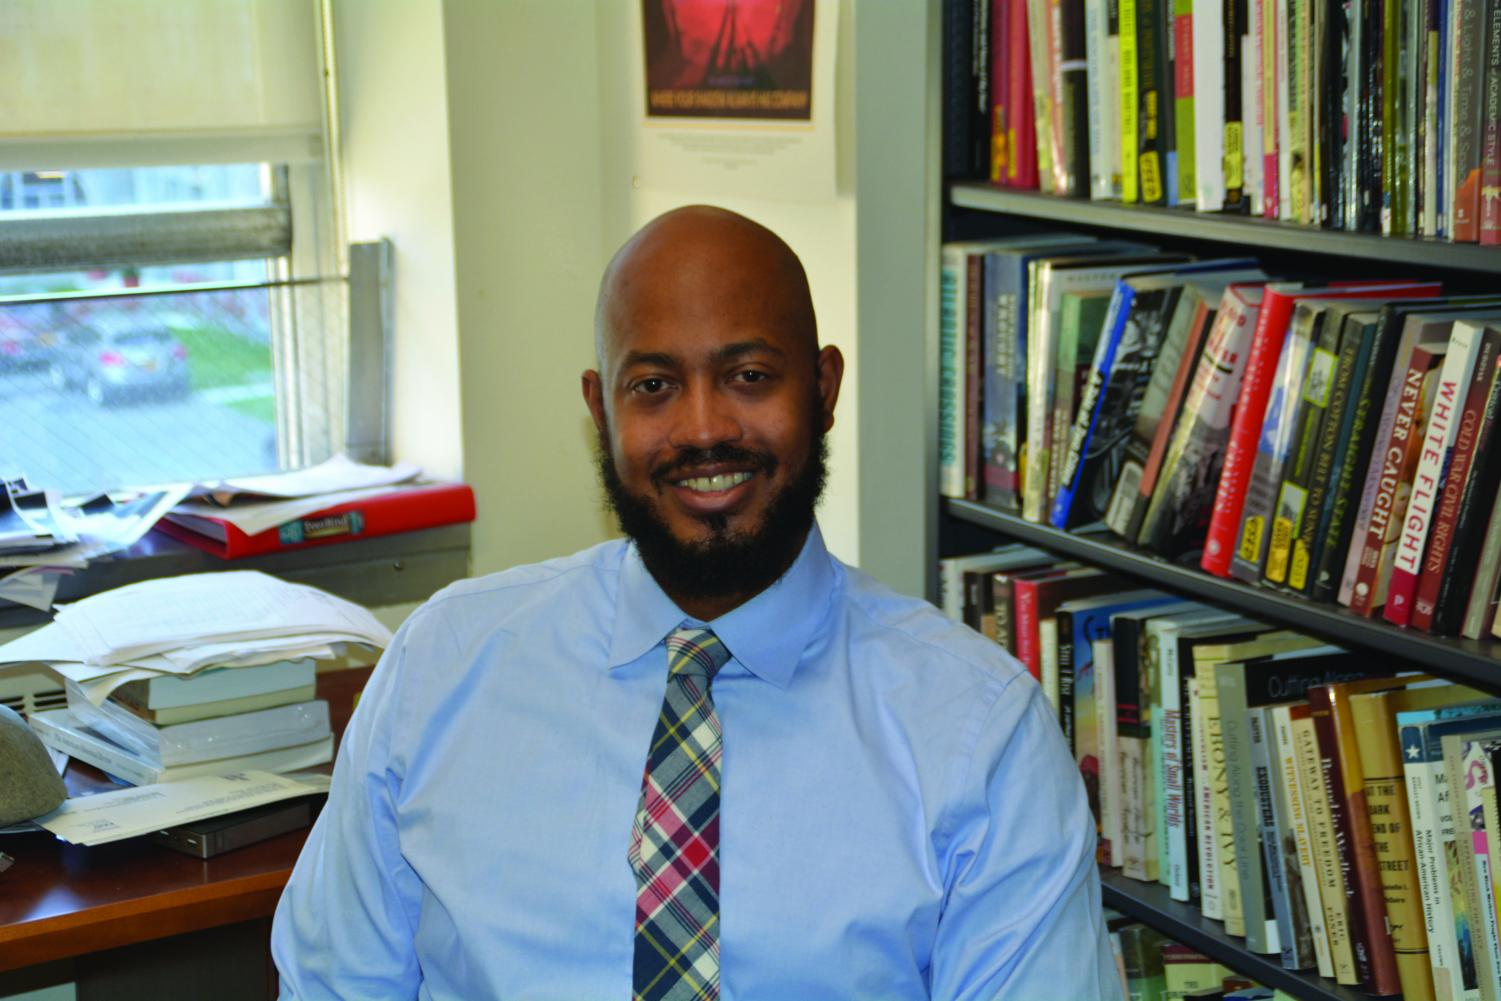 Dr. Robert Bland teaches history with a focus on African American studies.